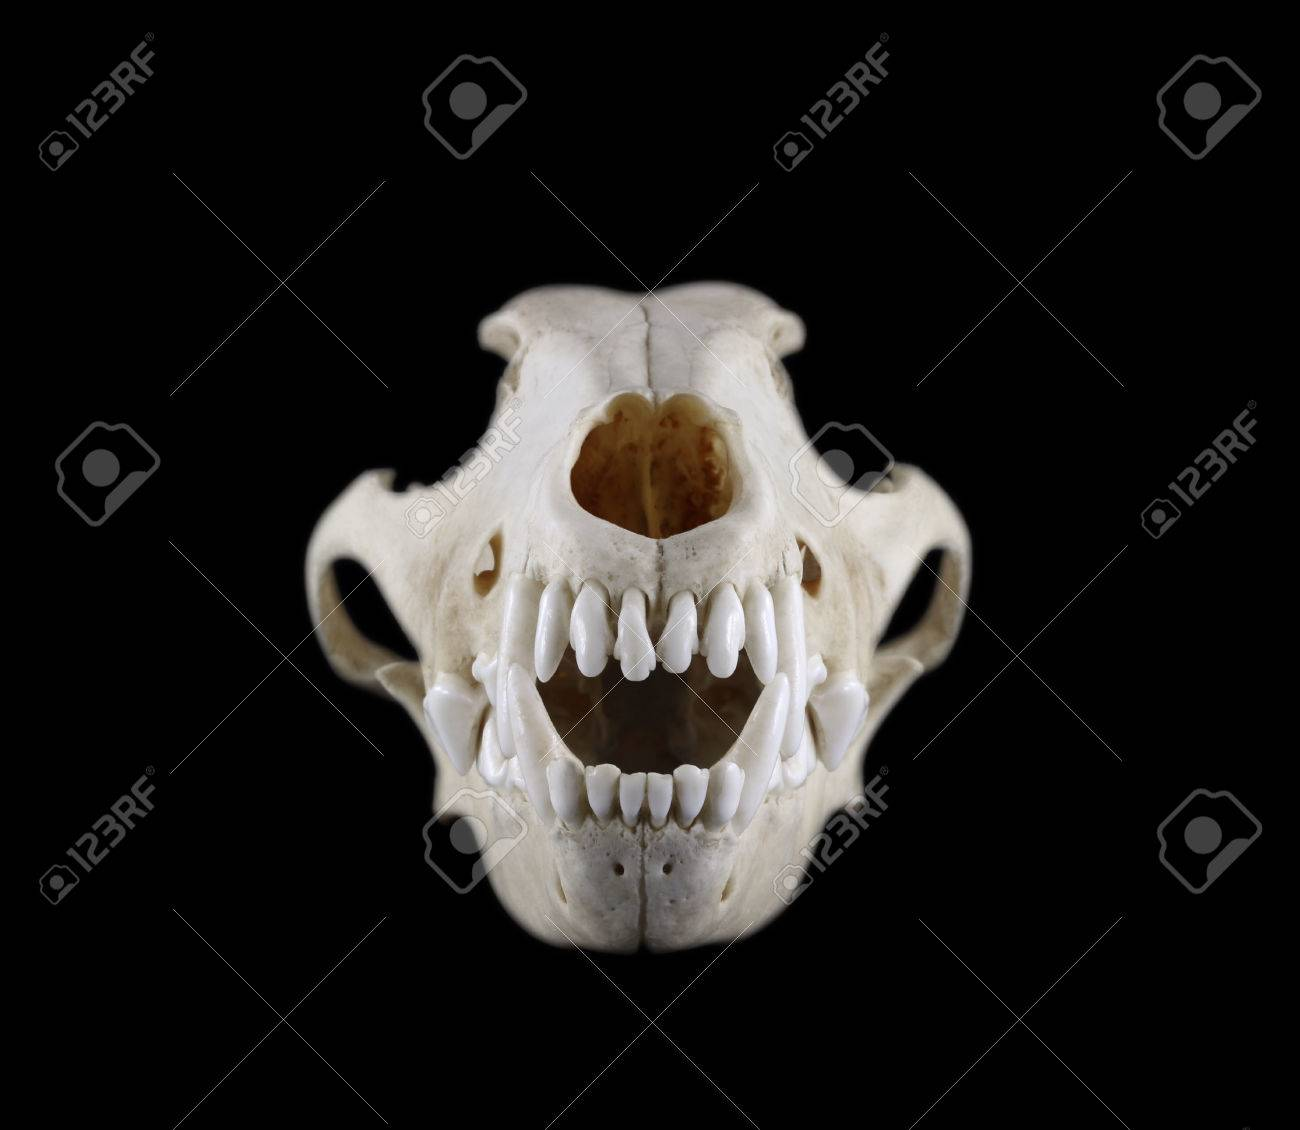 Skull Of Dog Breed The Fox Terrier Front View Isolated On A Black ...